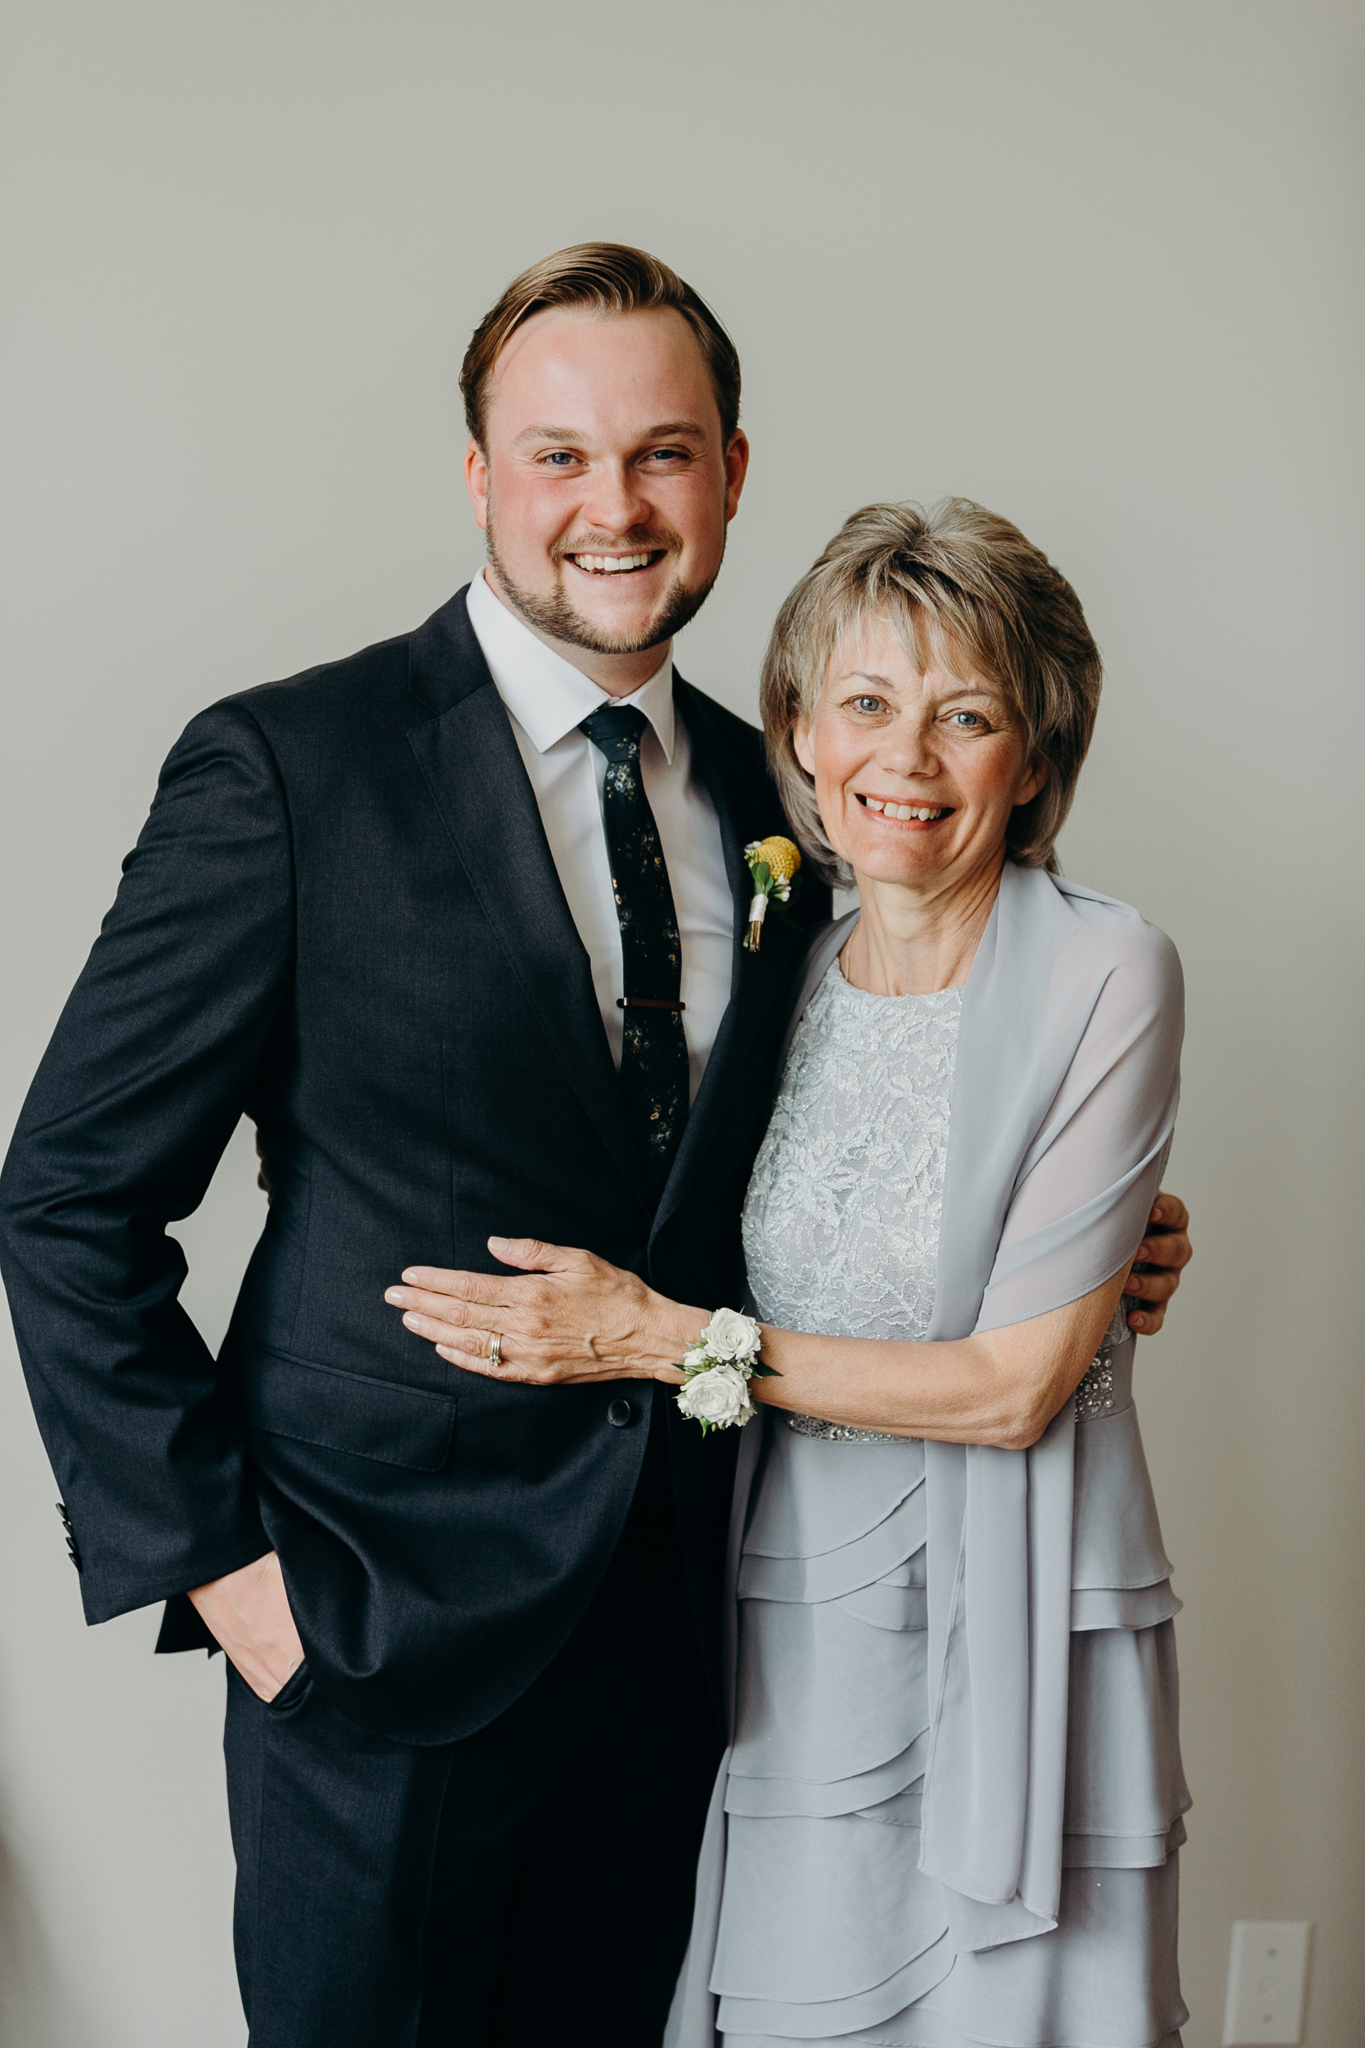 Portrait of groom and his mother smiling and embracing family wedding photography MN